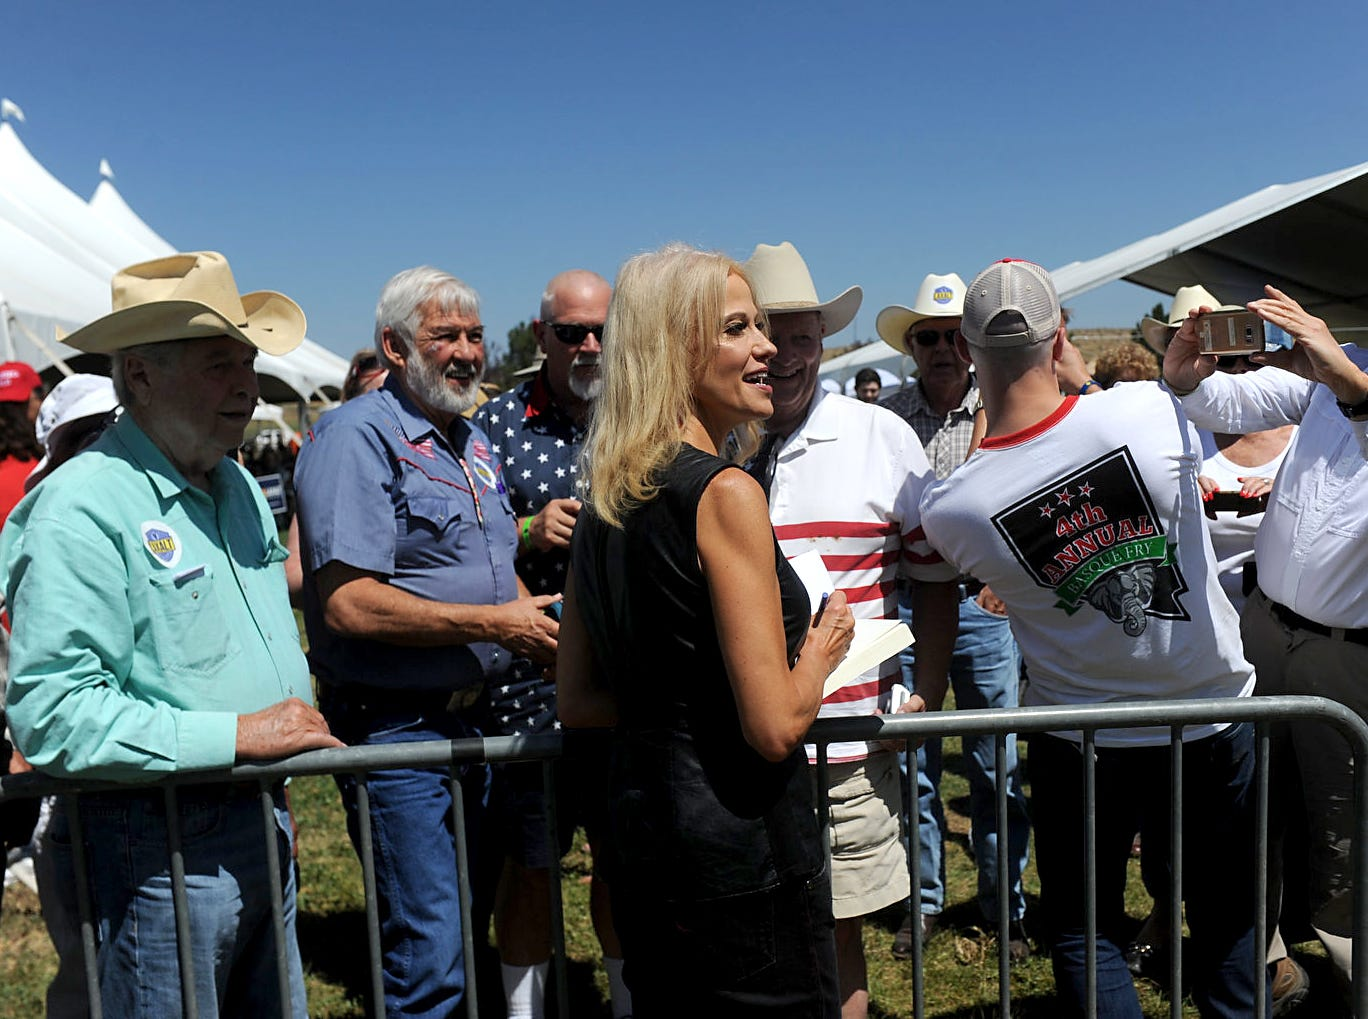 Fans gather around Kellyanne Conway  during the 4th annual Basque Fry at the Corley Ranch in Gardnerville, Nev. on Aug. 25, 2018.